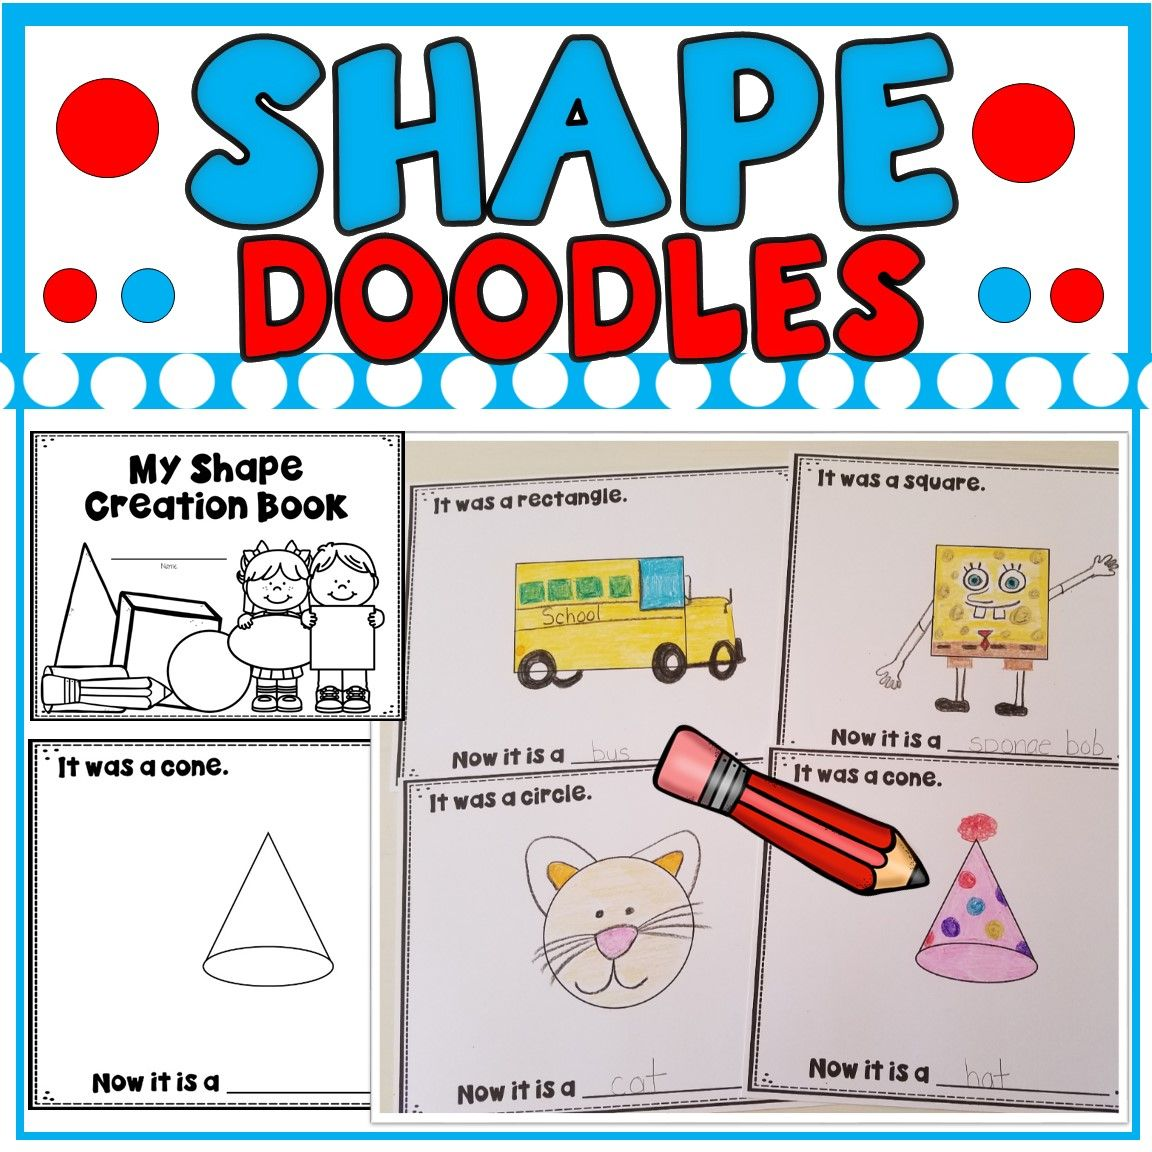 My Shape Creation Book Students Turn Ordinary Shapes Into